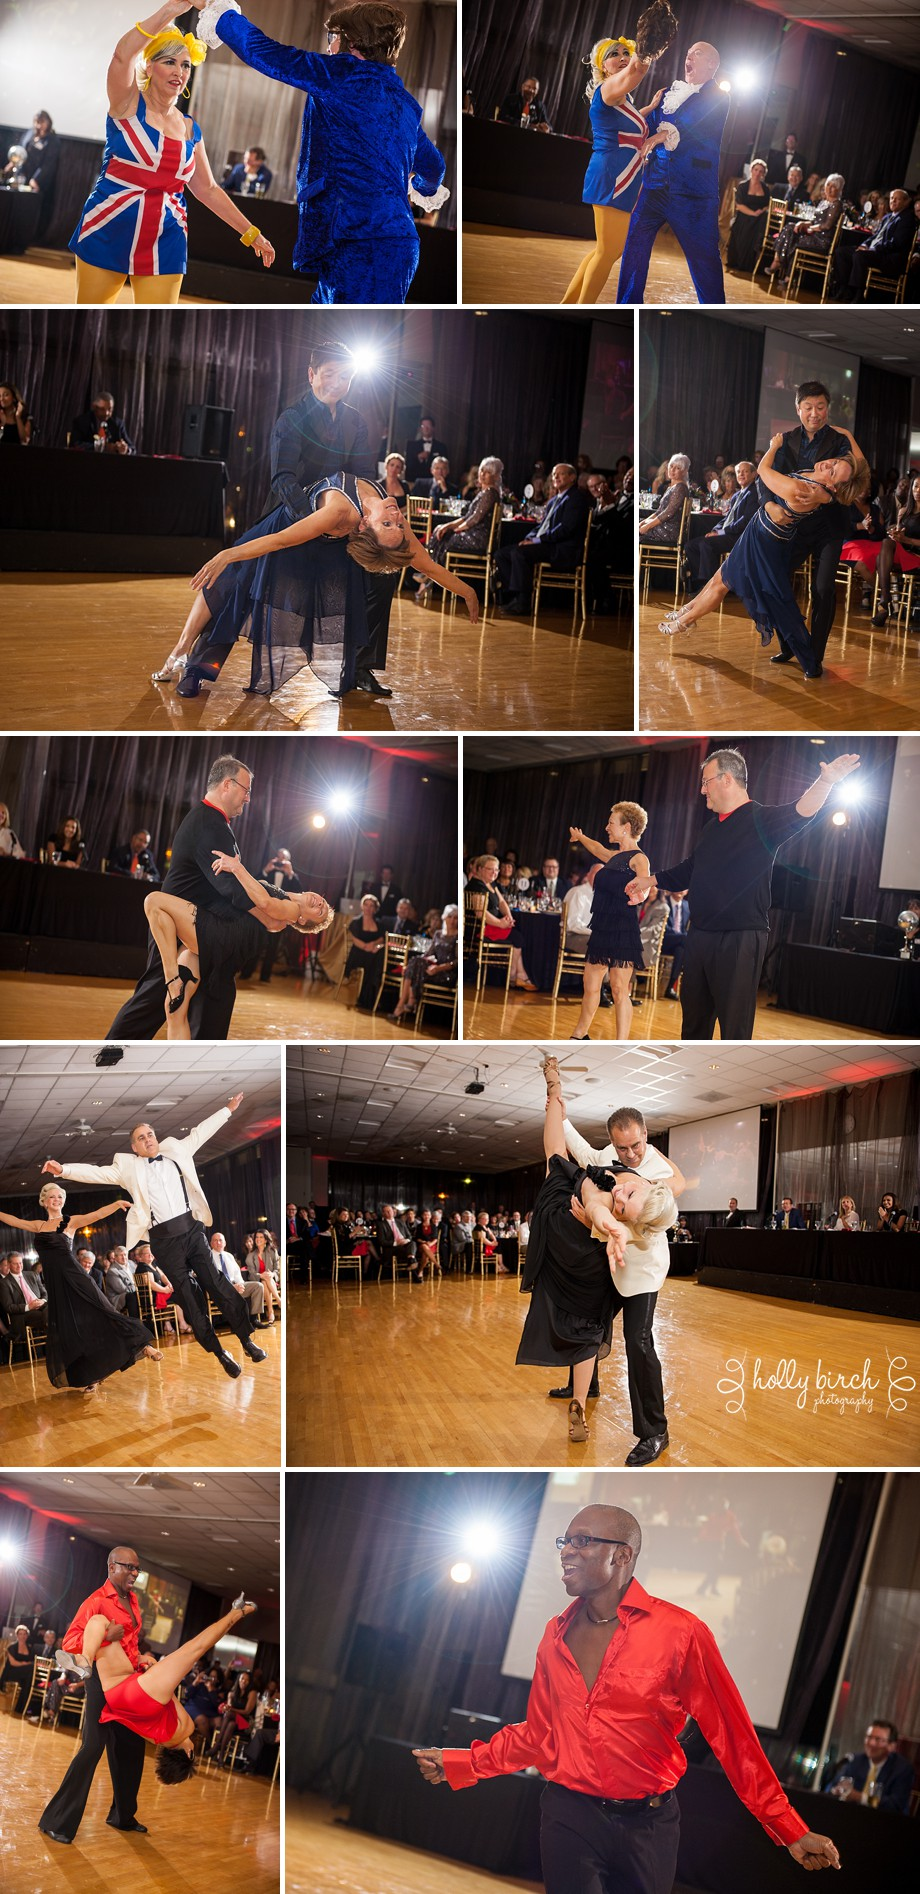 Regent ballroom dancing at Refinery